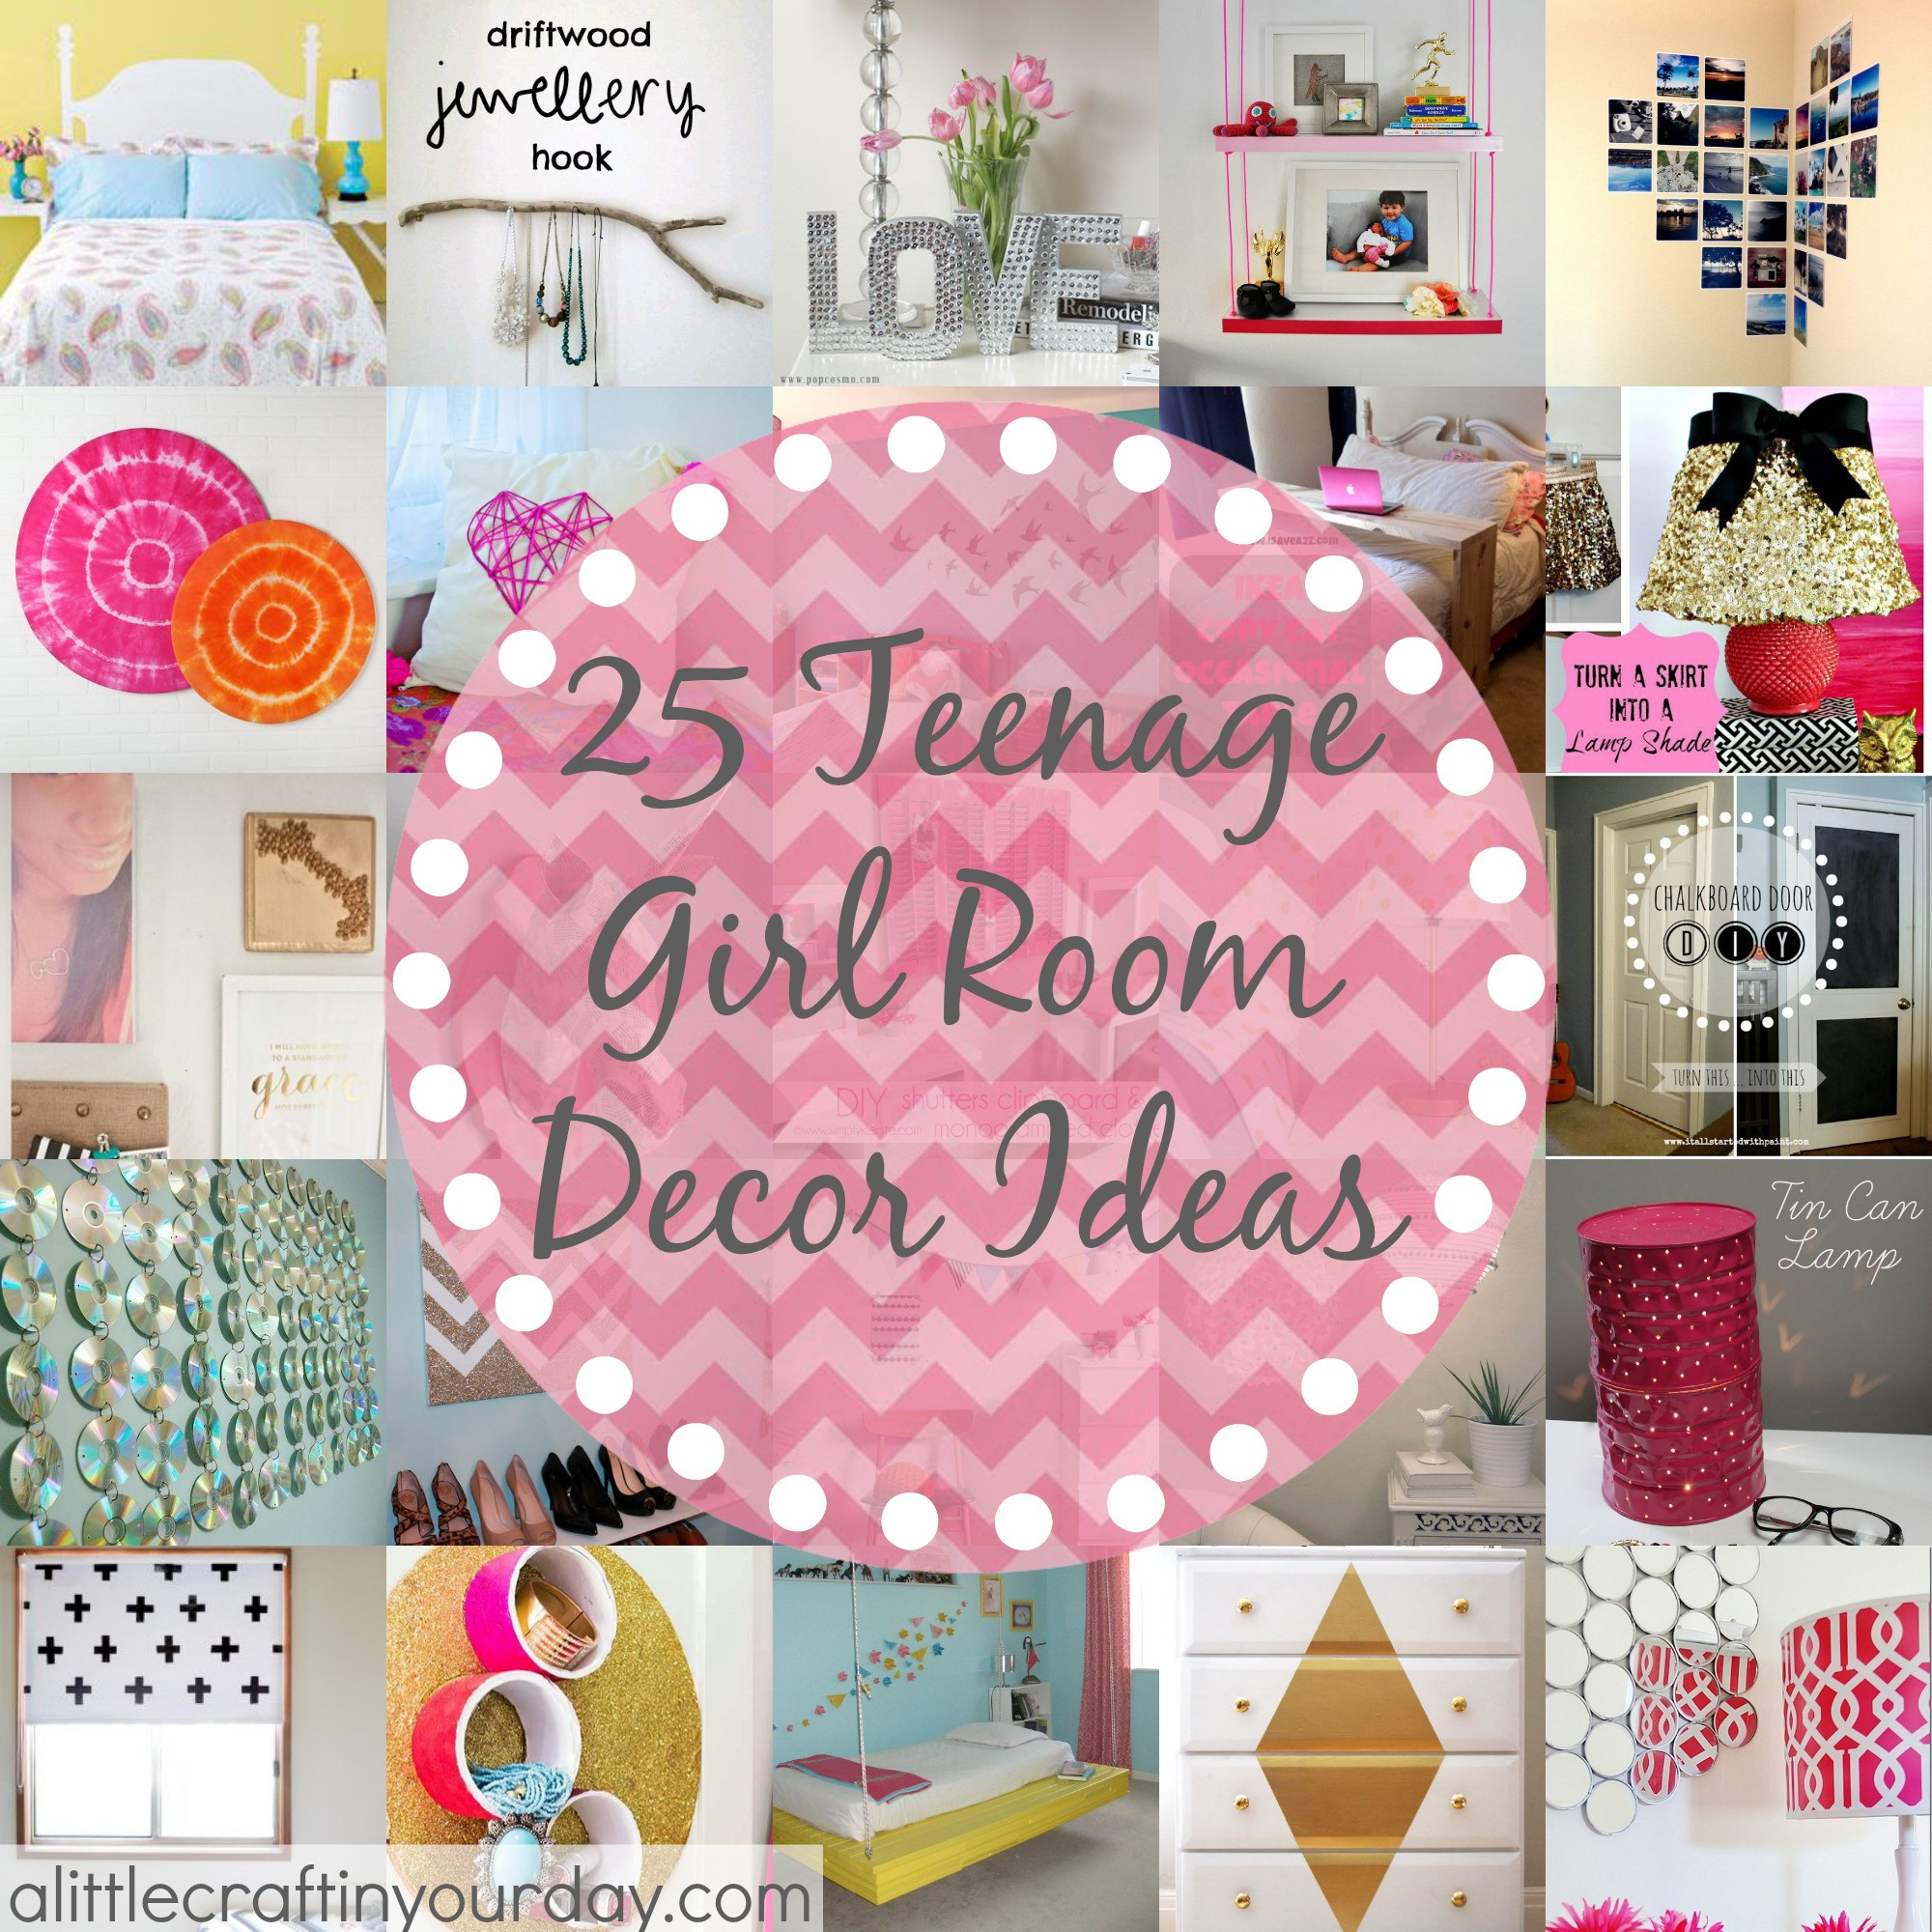 DIY Room Decorations For Girls  25 More Teenage Girl Room Decor Ideas A Little Craft In